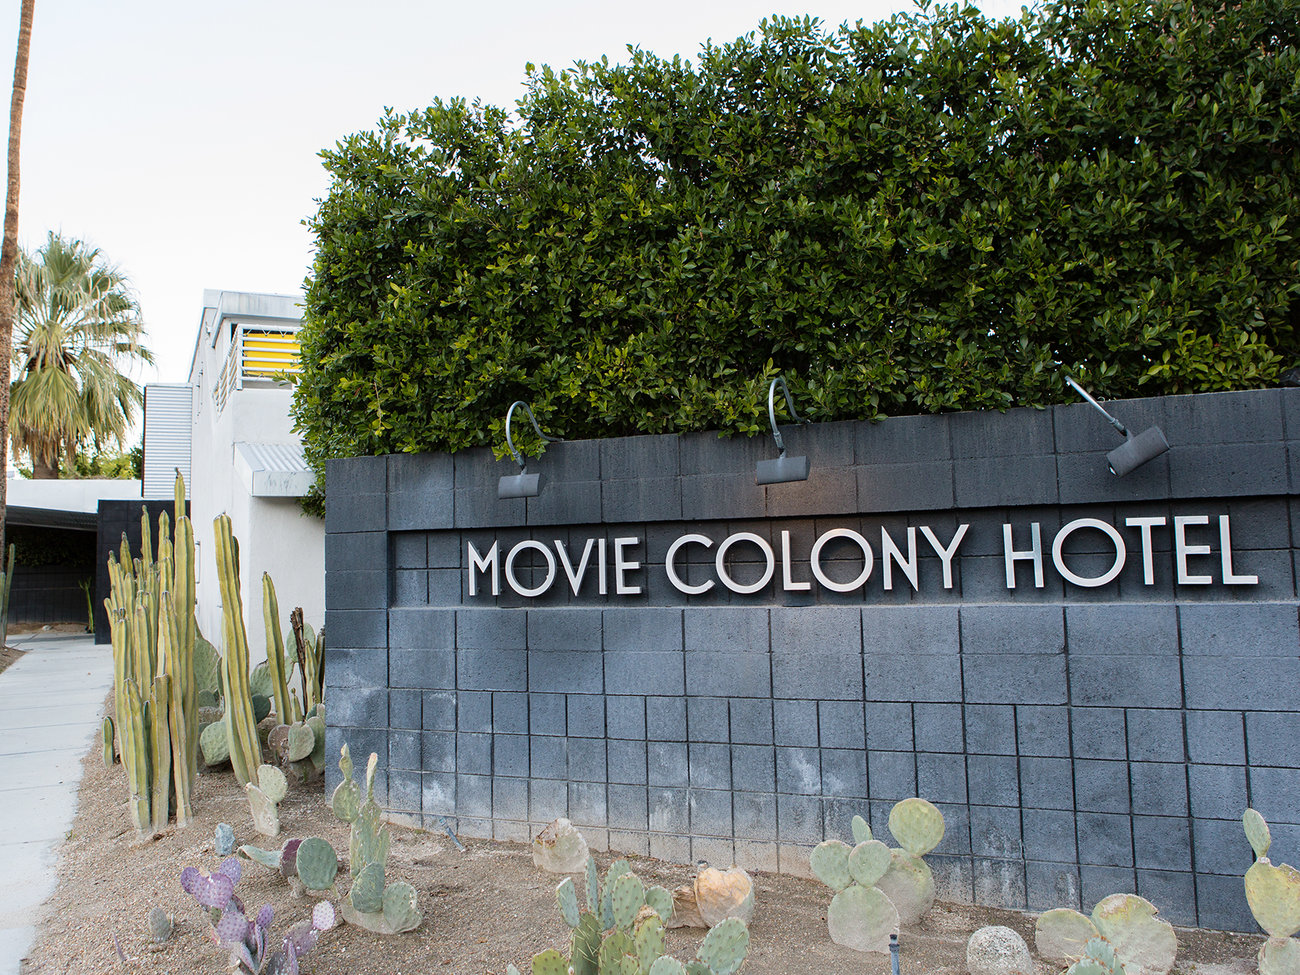 Movie Colony Hotel in Palm Springs